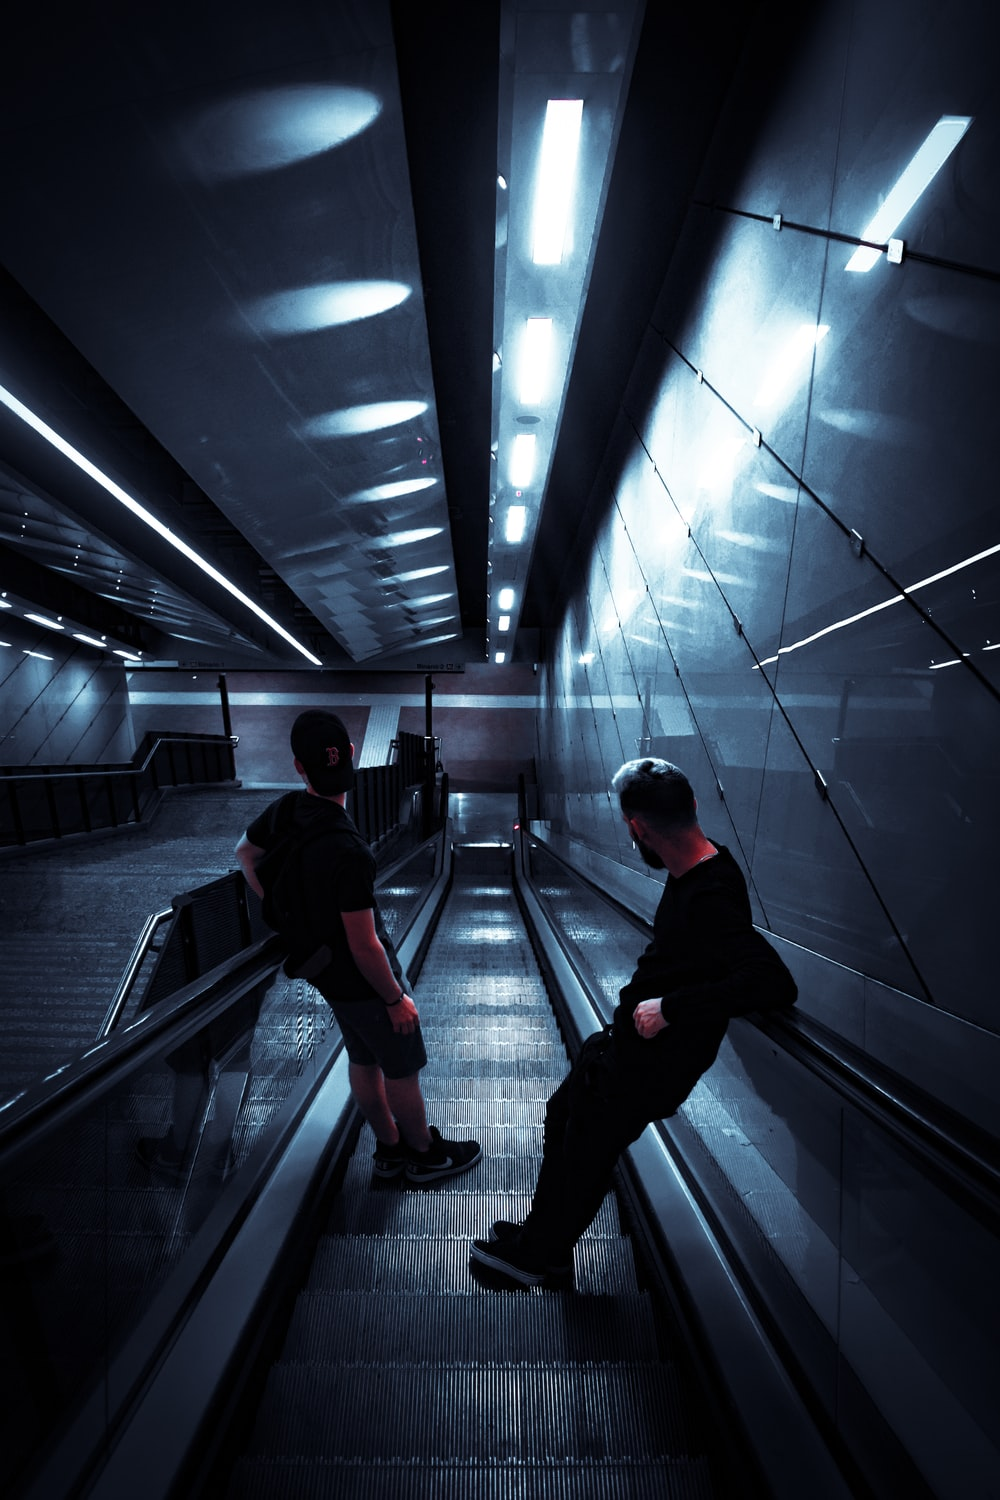 two man standing on escalator in mall